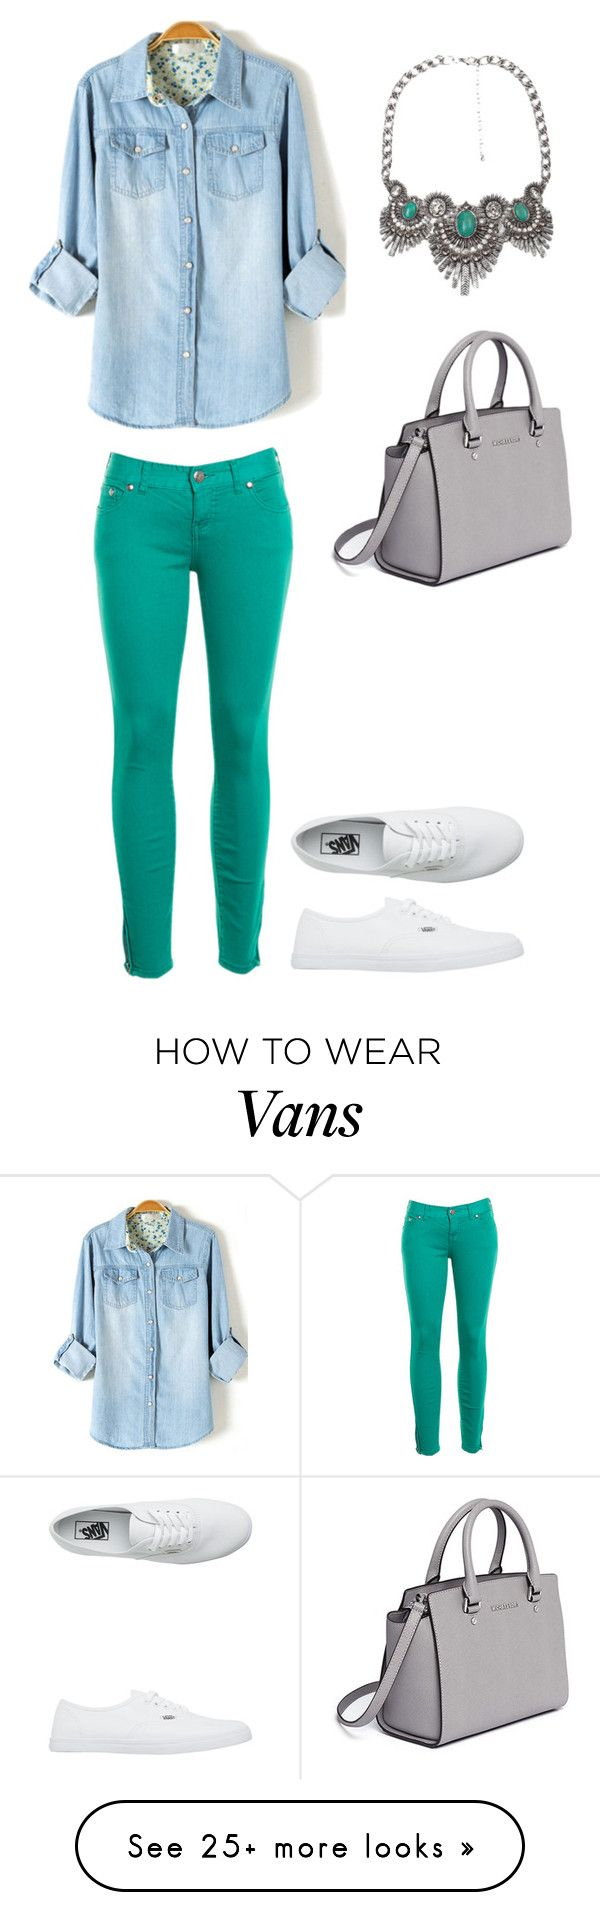 """Untitled #312"" by bintoman on Polyvore featuring BKE, Free People, Vans and MICHAEL Michael Kors"